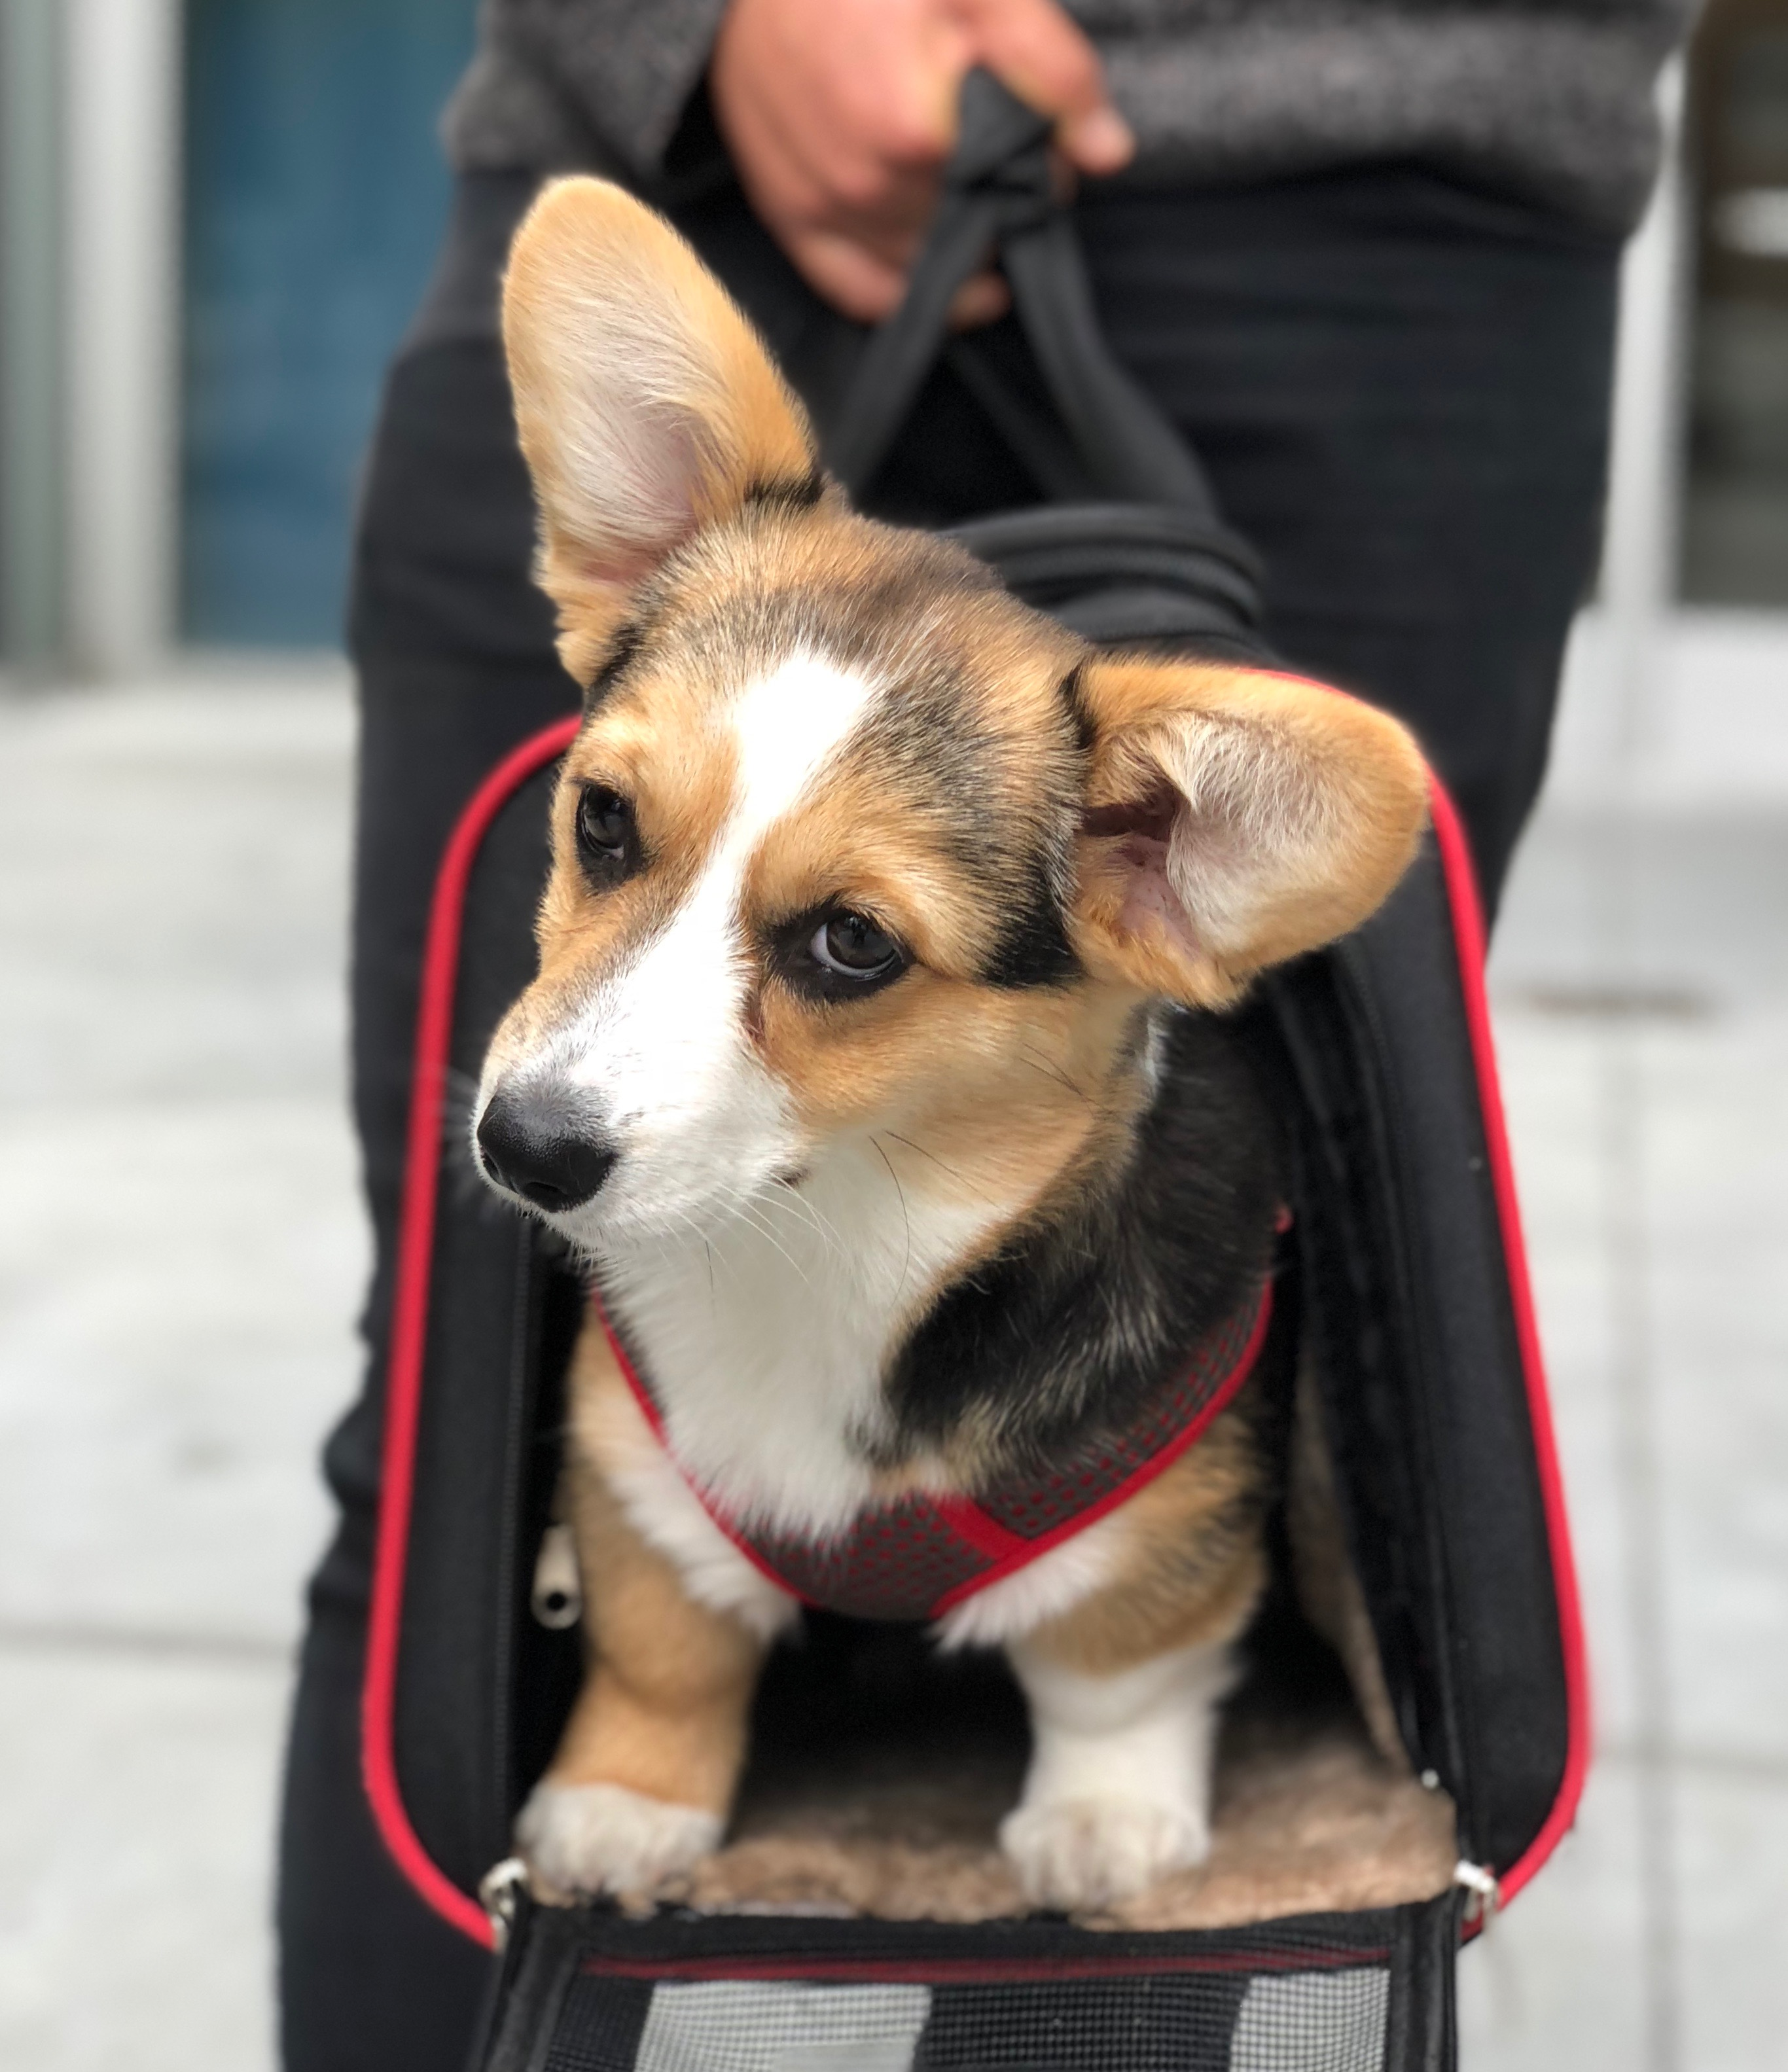 Pembroke Welsh Corgi Sticking Her Head Out Of A Traveling Bag